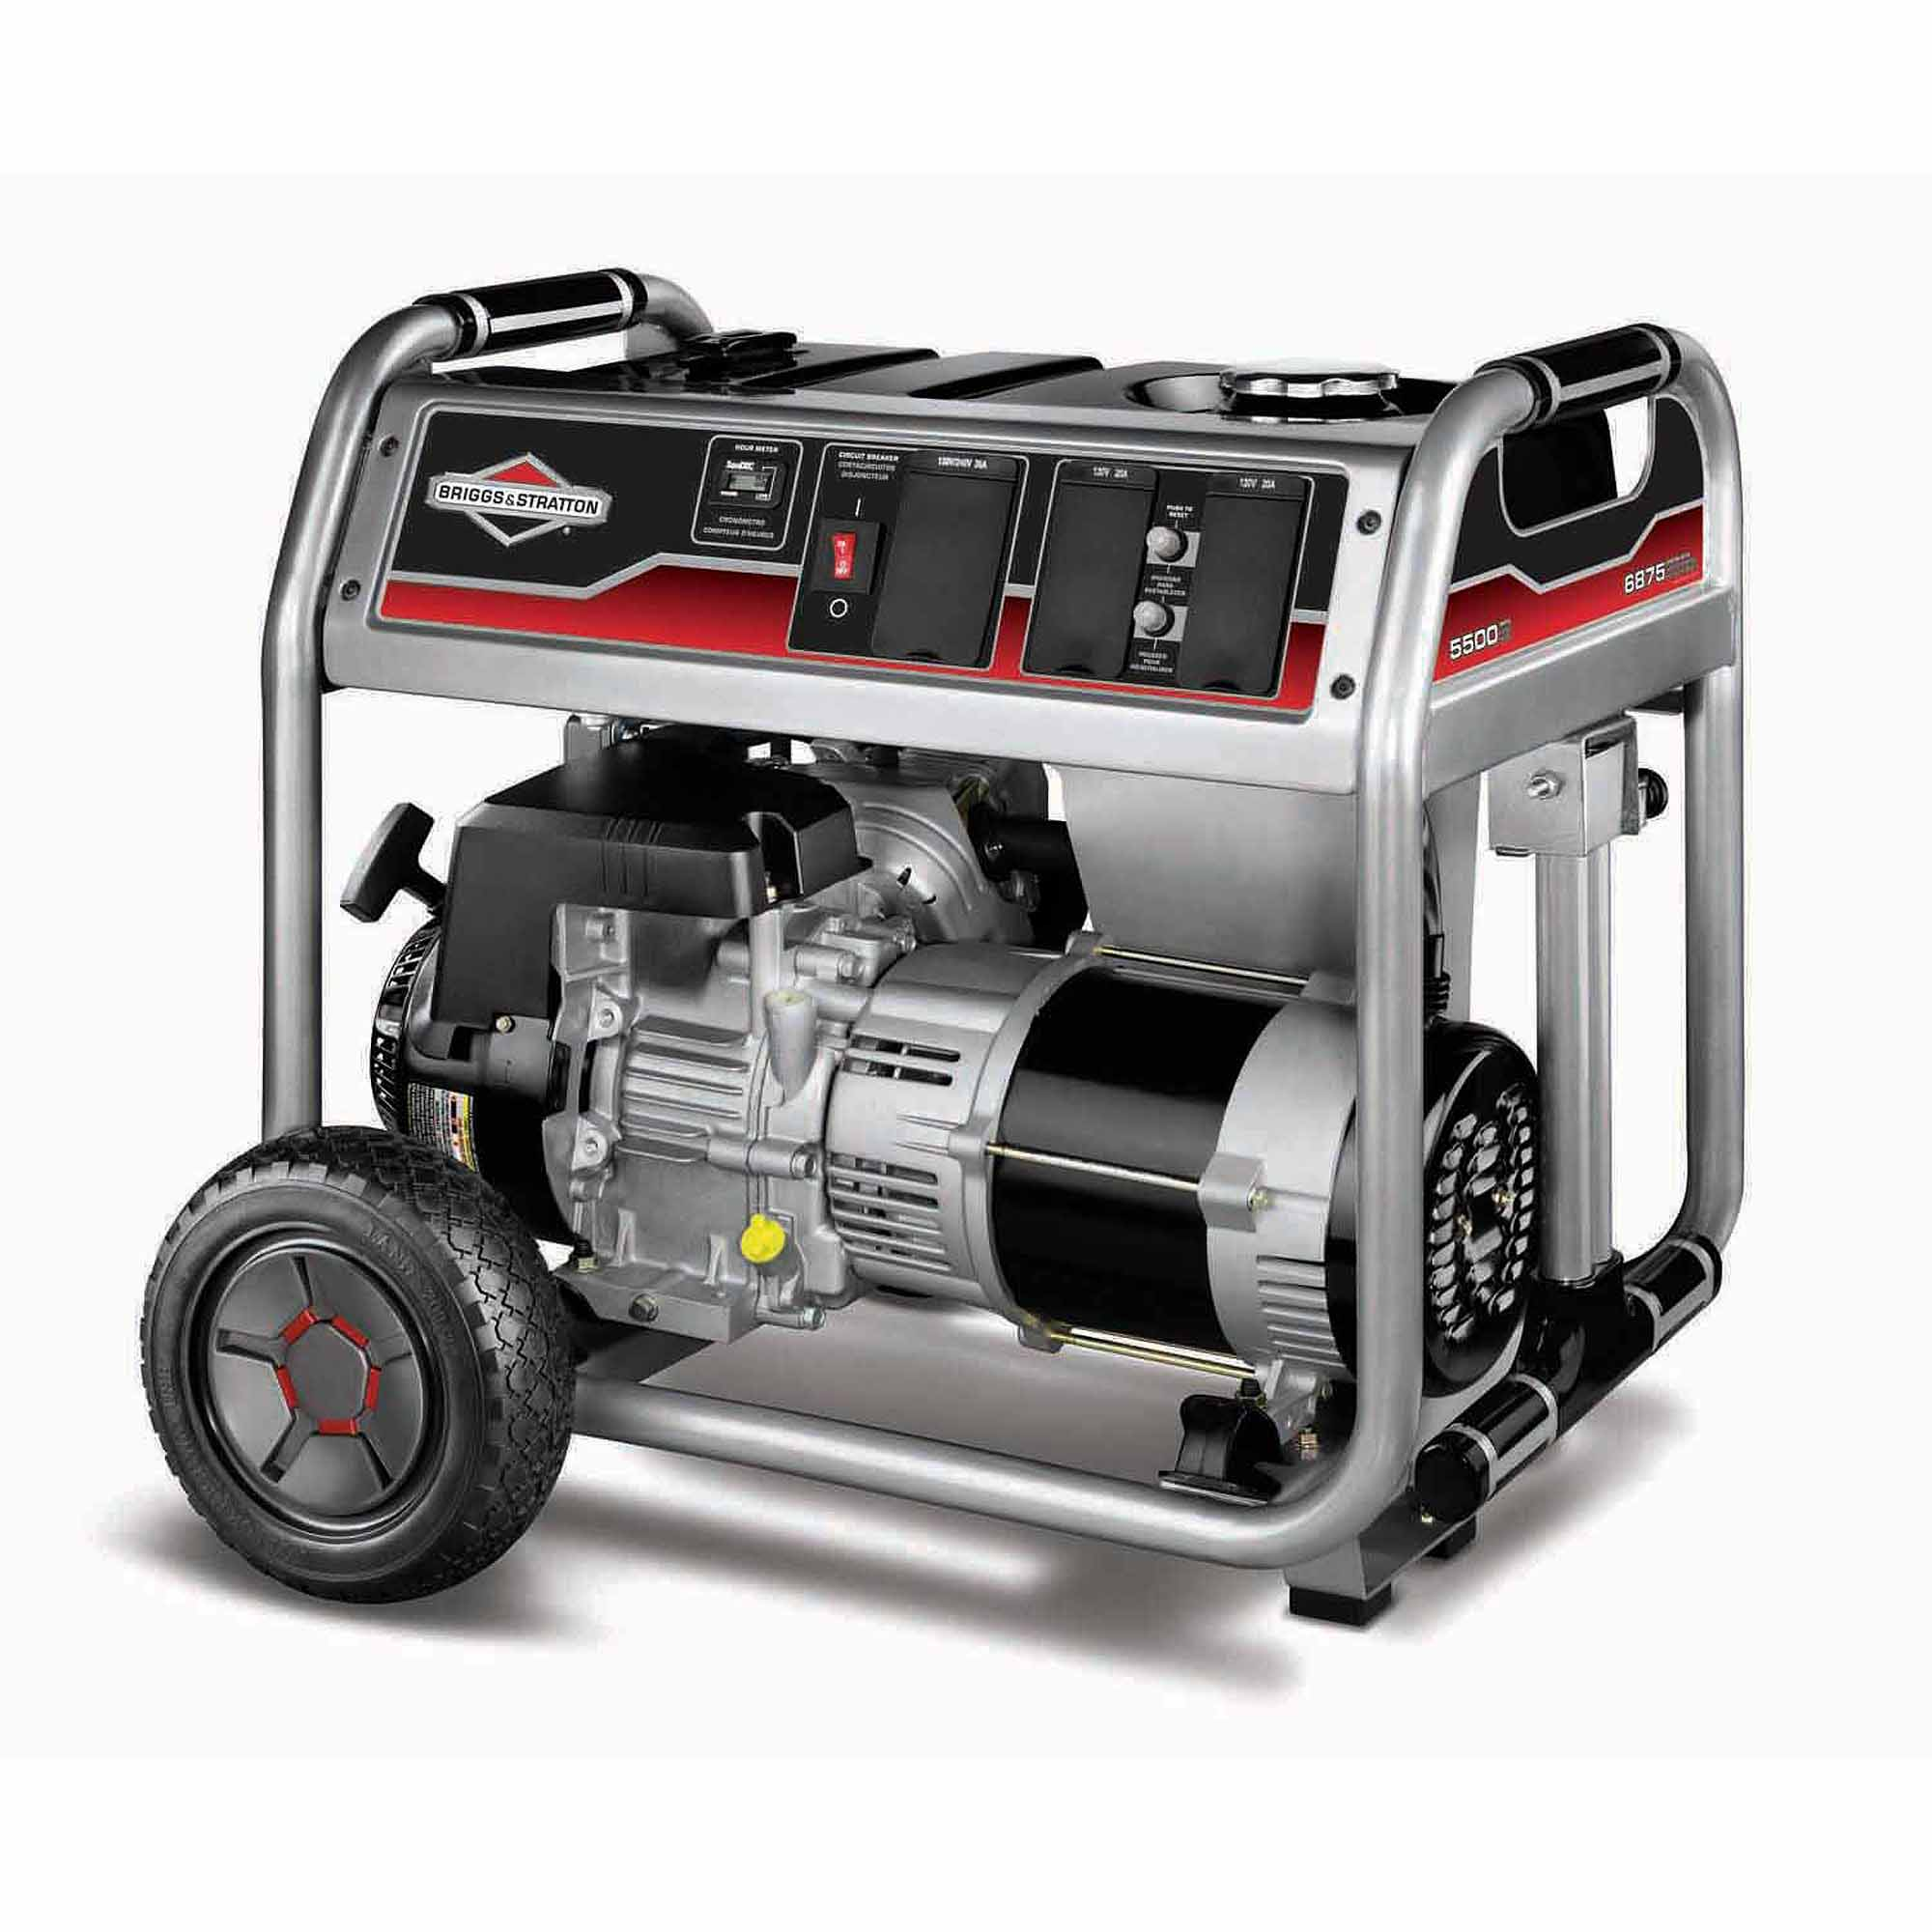 Briggs and Stratton 5500-Watt Gas Powered Portable Generator with 1650 Series 342cc Engine and Power Surge Alternator